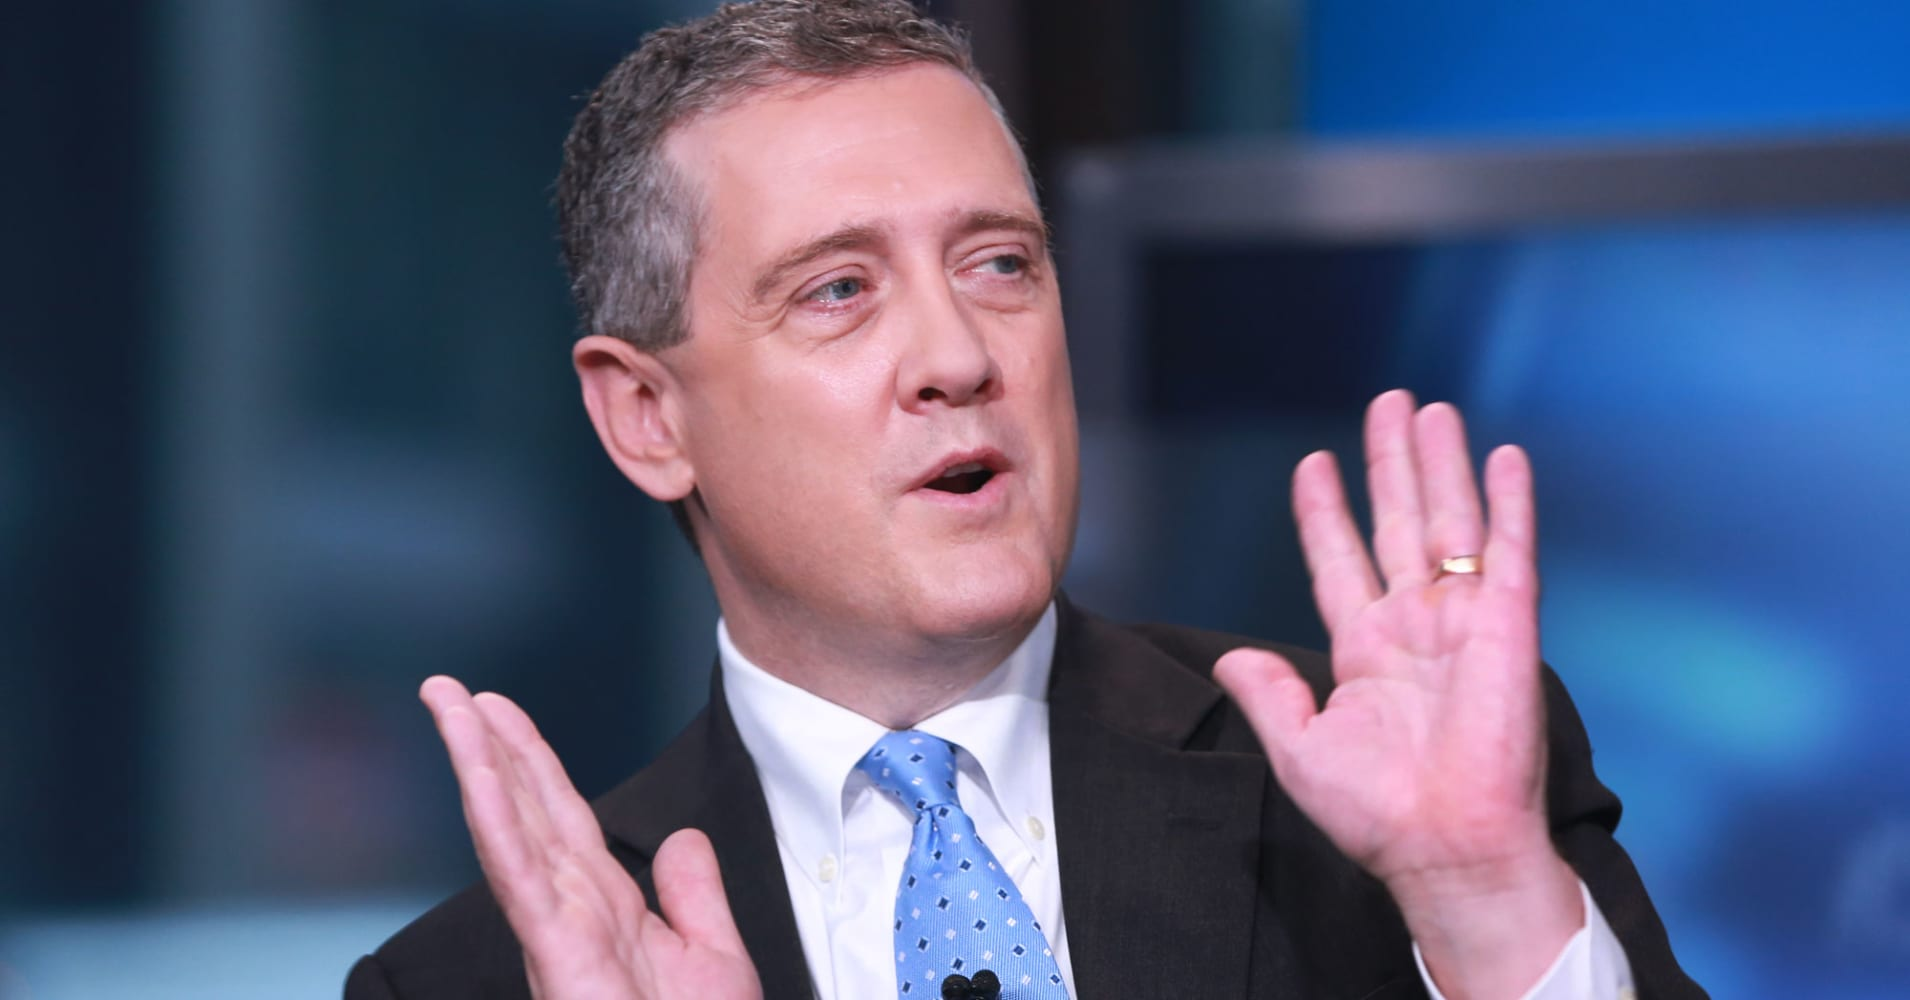 Fed must 'tread carefully' given market signals on outlook: Bullard